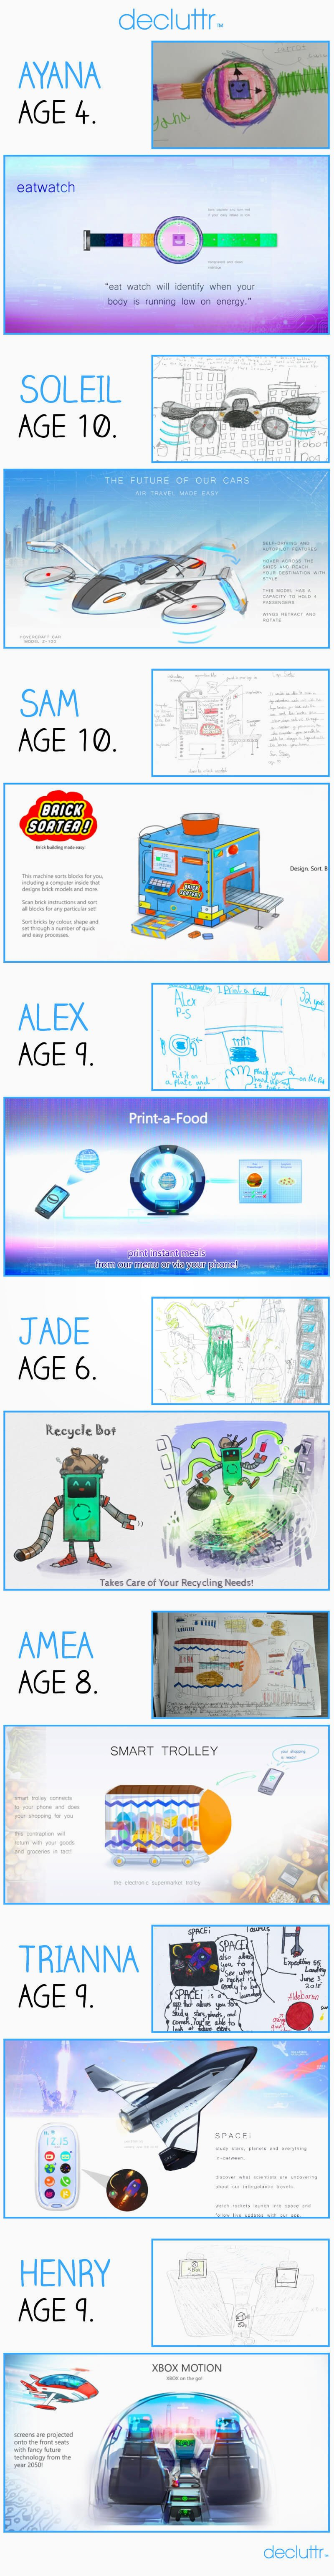 In the Eyes of a Child: How Children View the Future of Technology - Infographic